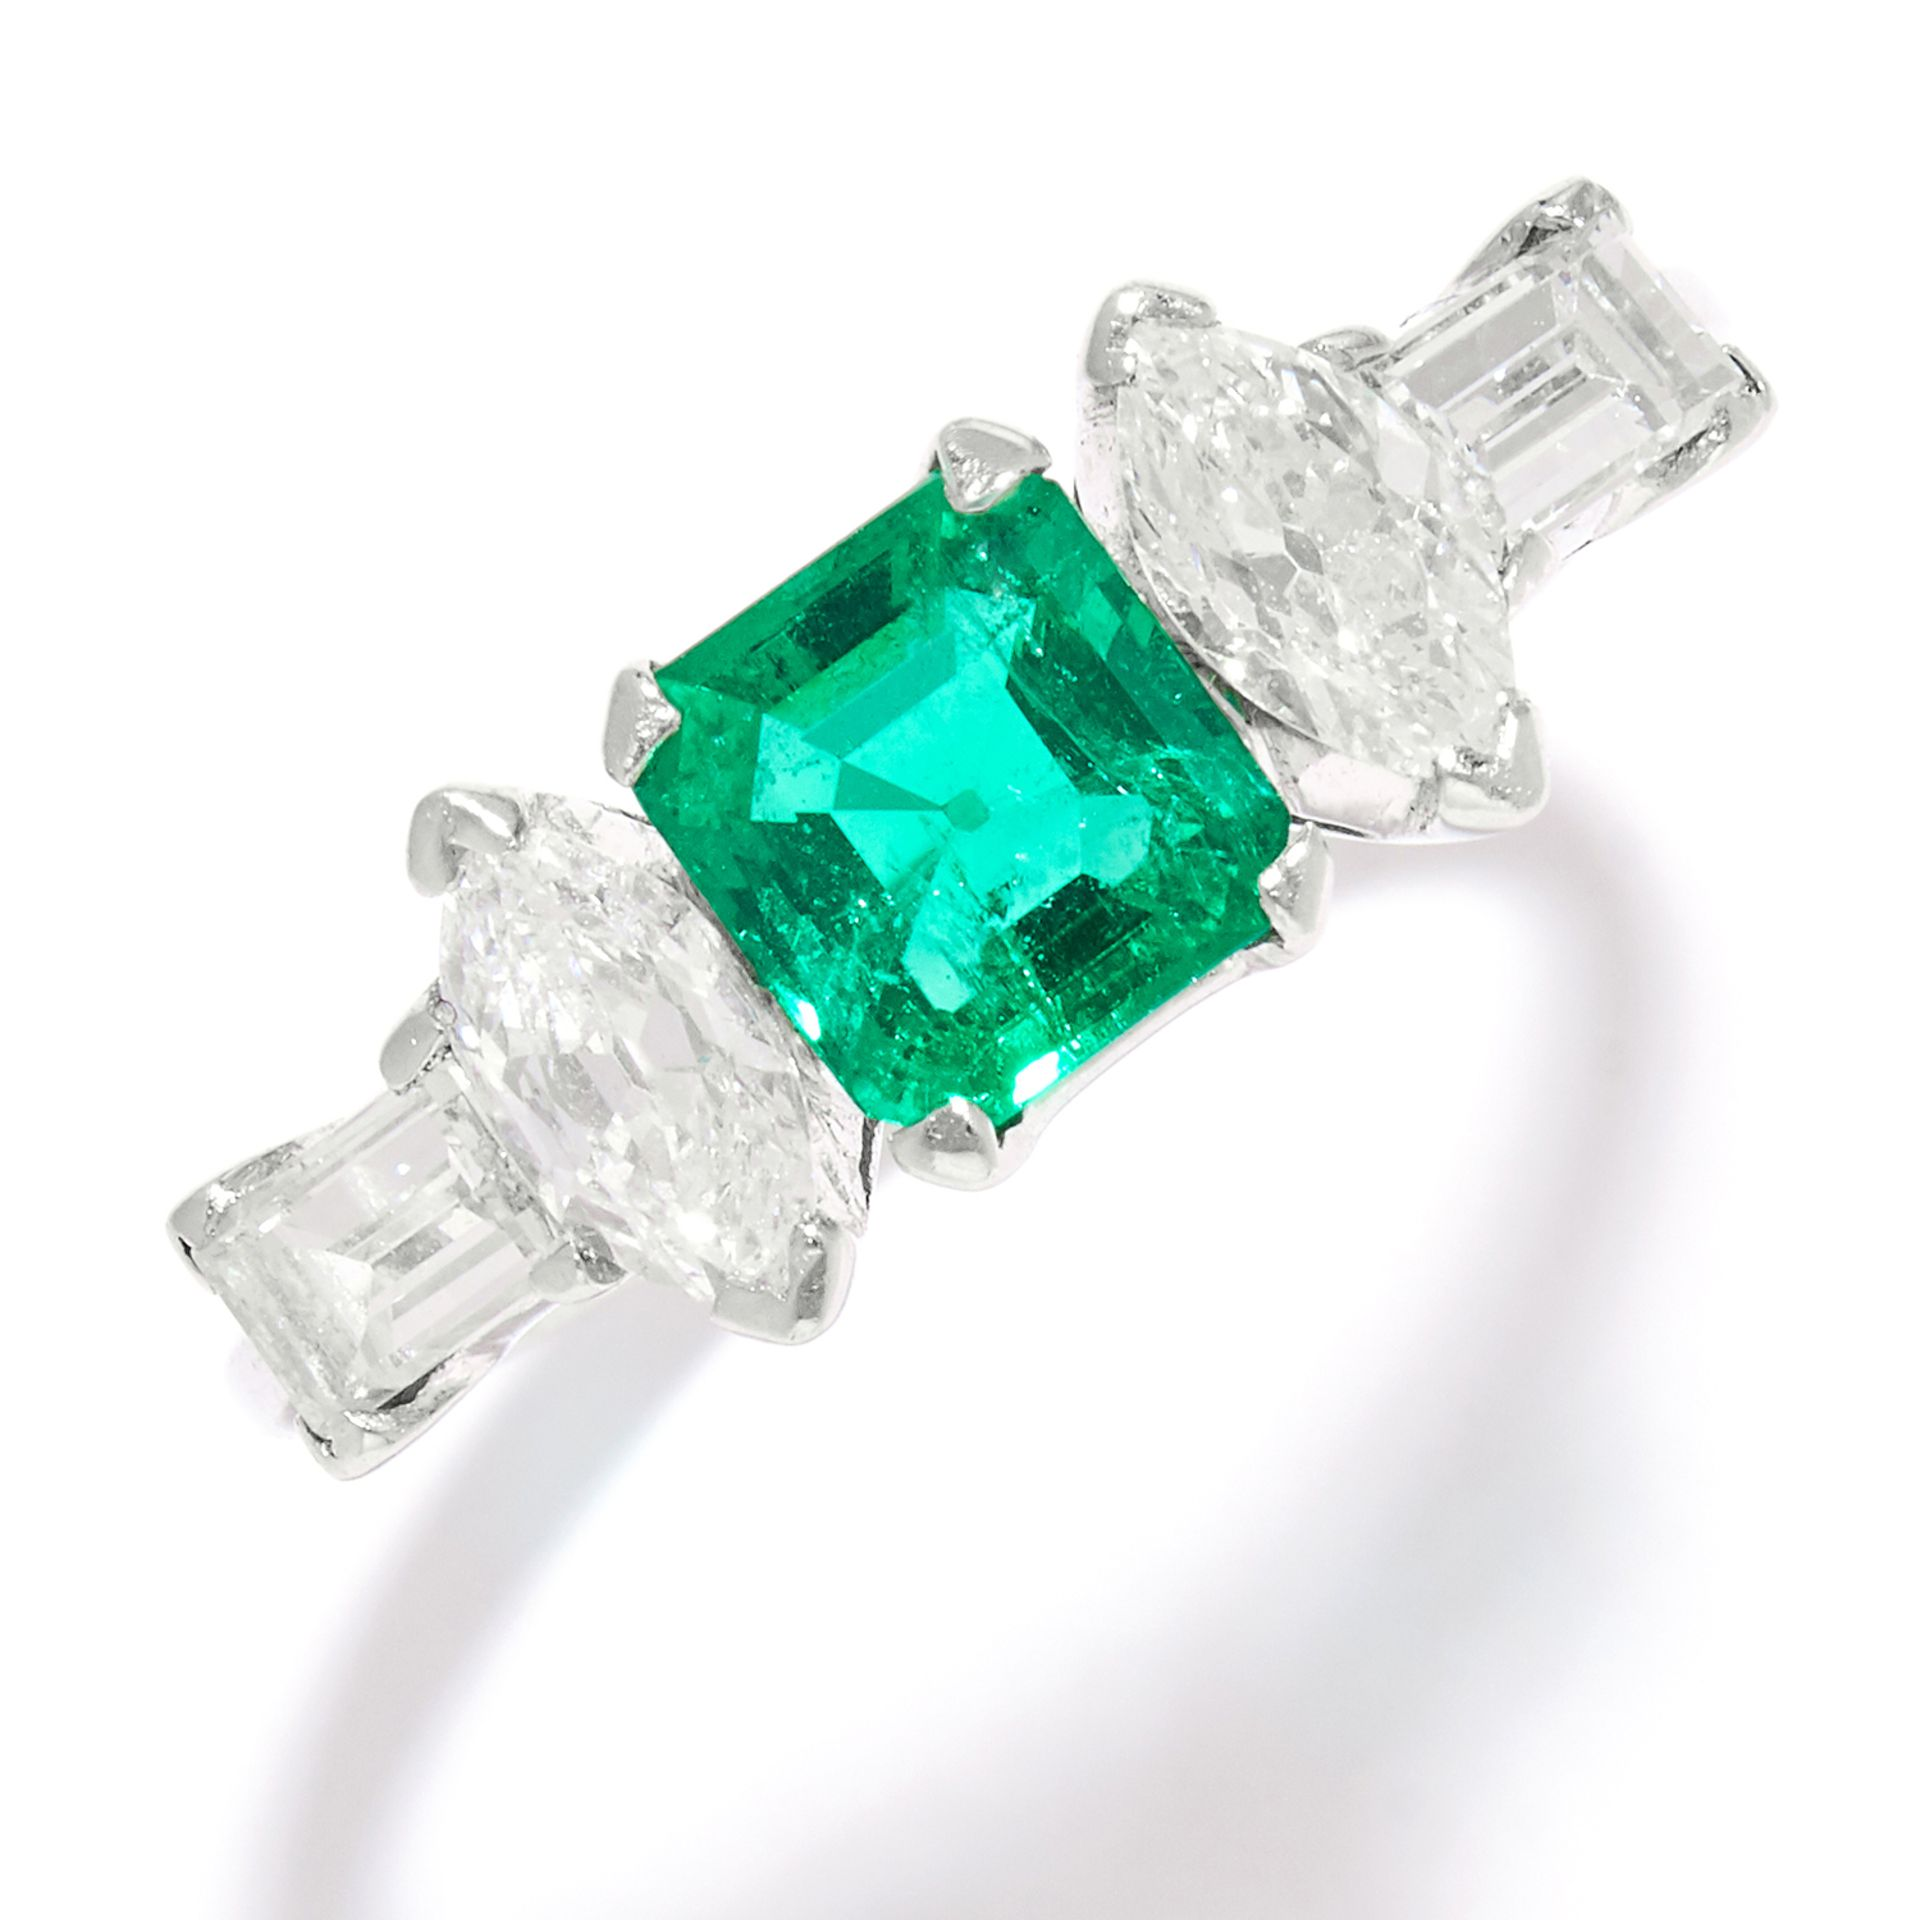 COLOMBIAN EMERALD AND DIAMOND RING in platinum, the step cut emerald of 1.0 carats between